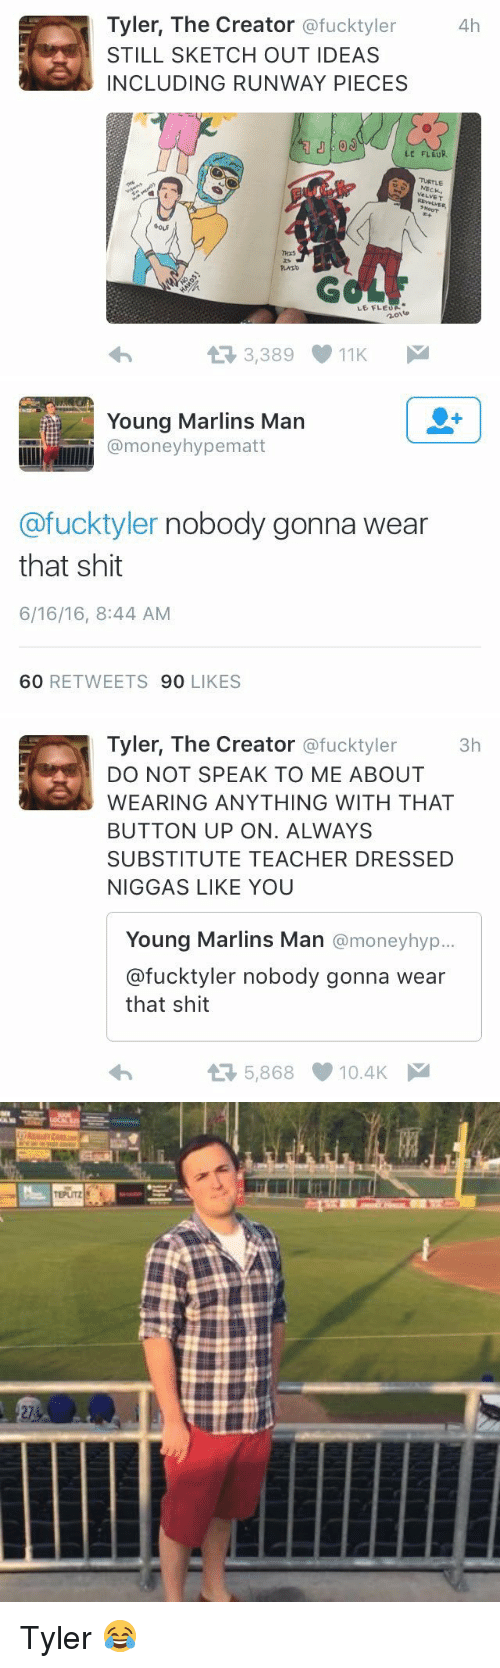 Marlin: Tyler, The Creator  ofucktyler  4h  STILL SKETCH OUT IDEAS  INCLUDING RUNWAY PIECES  LE FLEUR.  VELVET  LE FLEUR  t 3,389 11K M   illllllii mone  Marlins Man  U  Young hypematt  @fucktyler nobody gonna wear  that shit  6/16/16, 8:44 AM  60 RETWEETS  90  LIKES   Tyler, The Creator  @fuck tyler  3h  DO NOT SPEAK TO ME ABOUT  WEARING ANYTHING WITH THAT  BUTTON UP ON. ALWAYS  SUBSTITUTE TEACHER DRESSED  NIGGAS LIKE YOU  Young Marlins Man  @money hyp...  @fucktyler nobody gonna wear  that shit  5,868 10.4K  M   TEPUTZ Tyler 😂